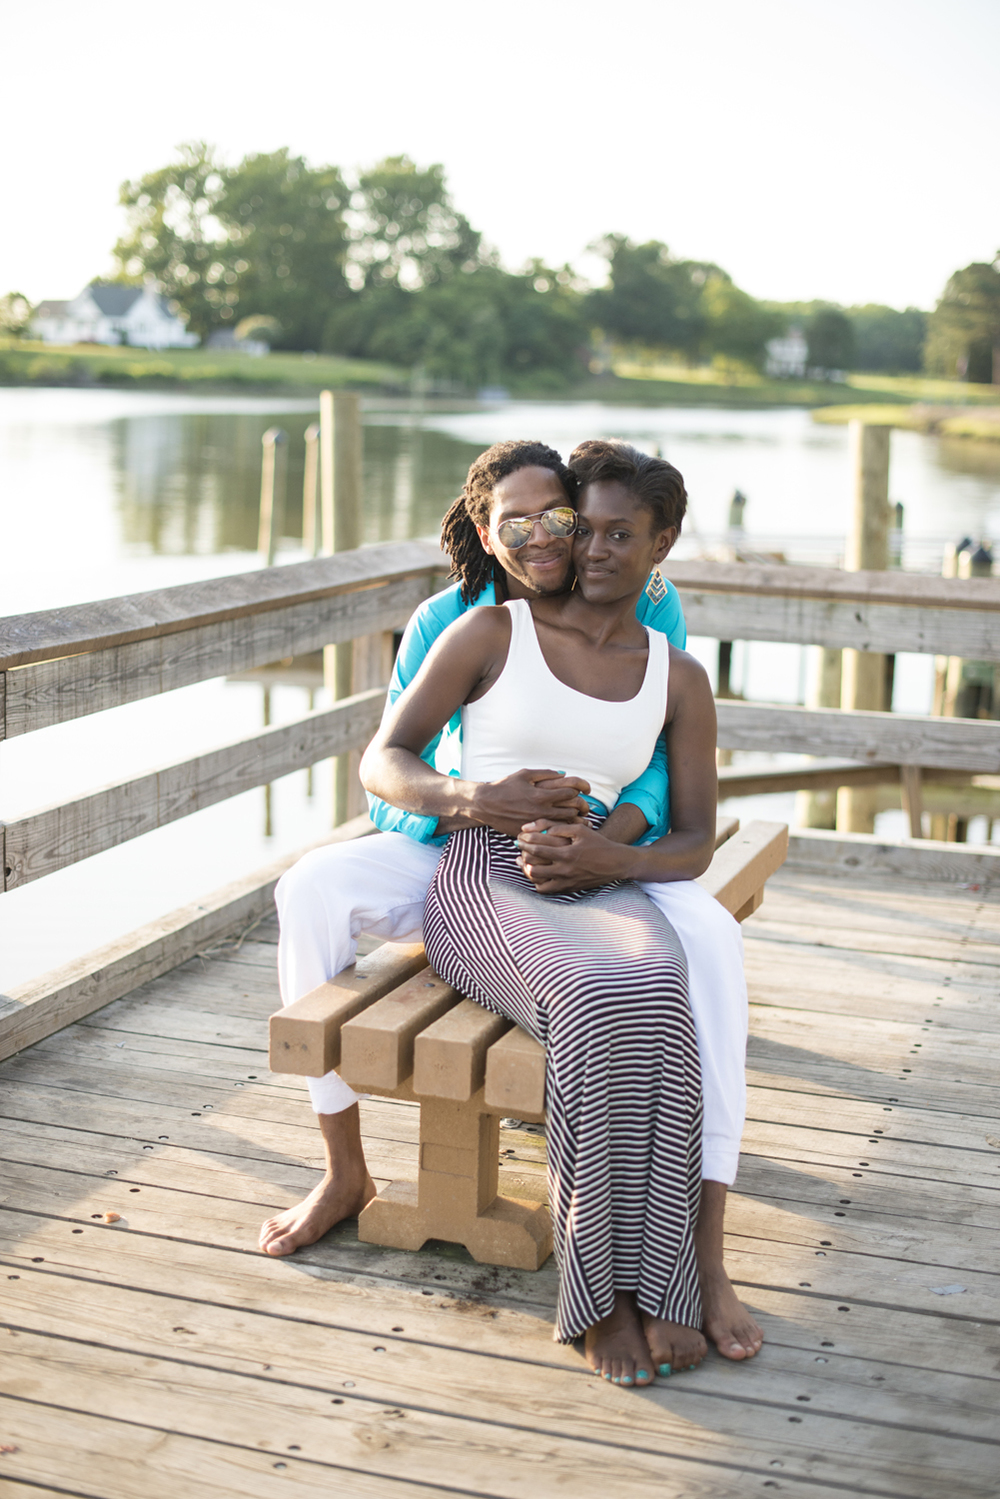 Anniversary portrait session at sunset on a pier by the water of Suffolk, Virginia